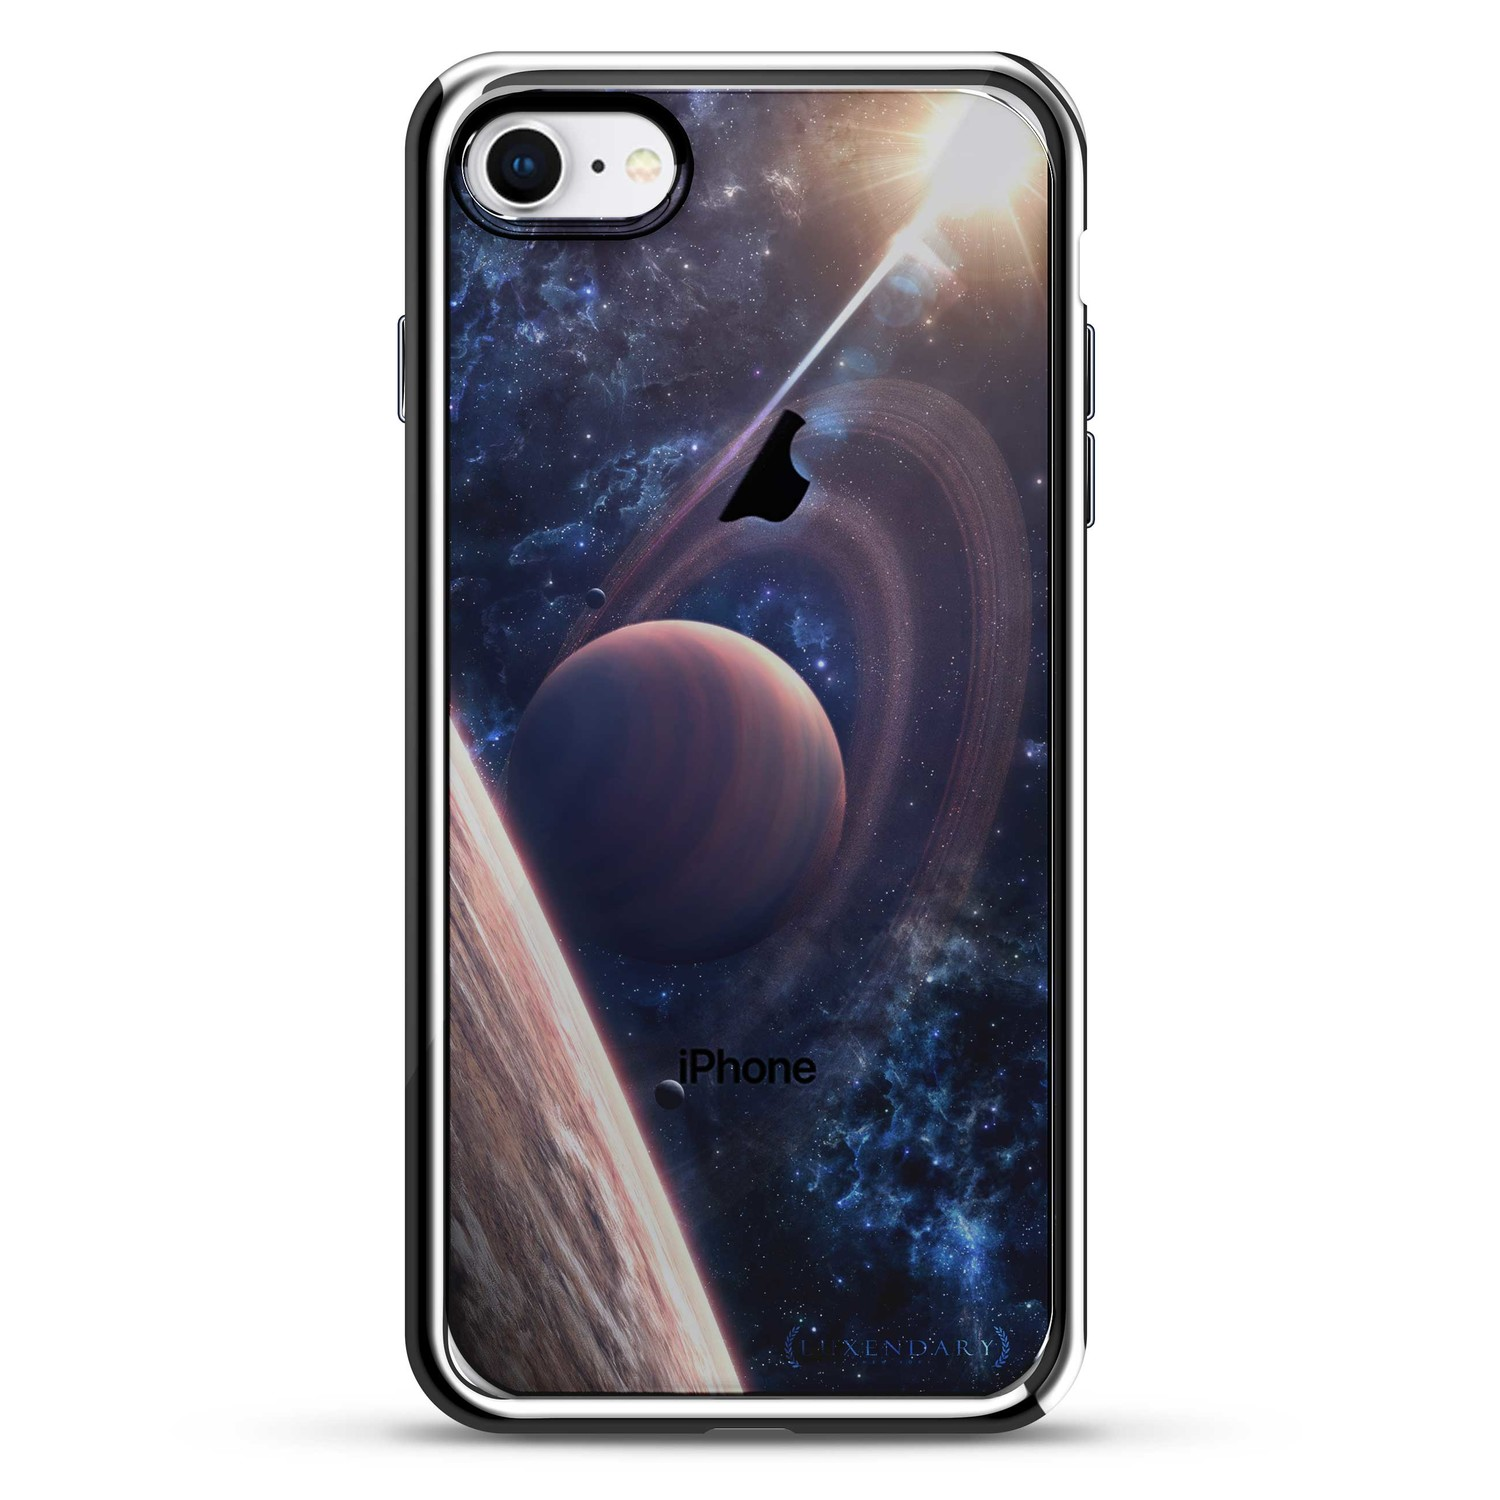 moons of saturn iphone 6 6s luxendary chrome. Black Bedroom Furniture Sets. Home Design Ideas